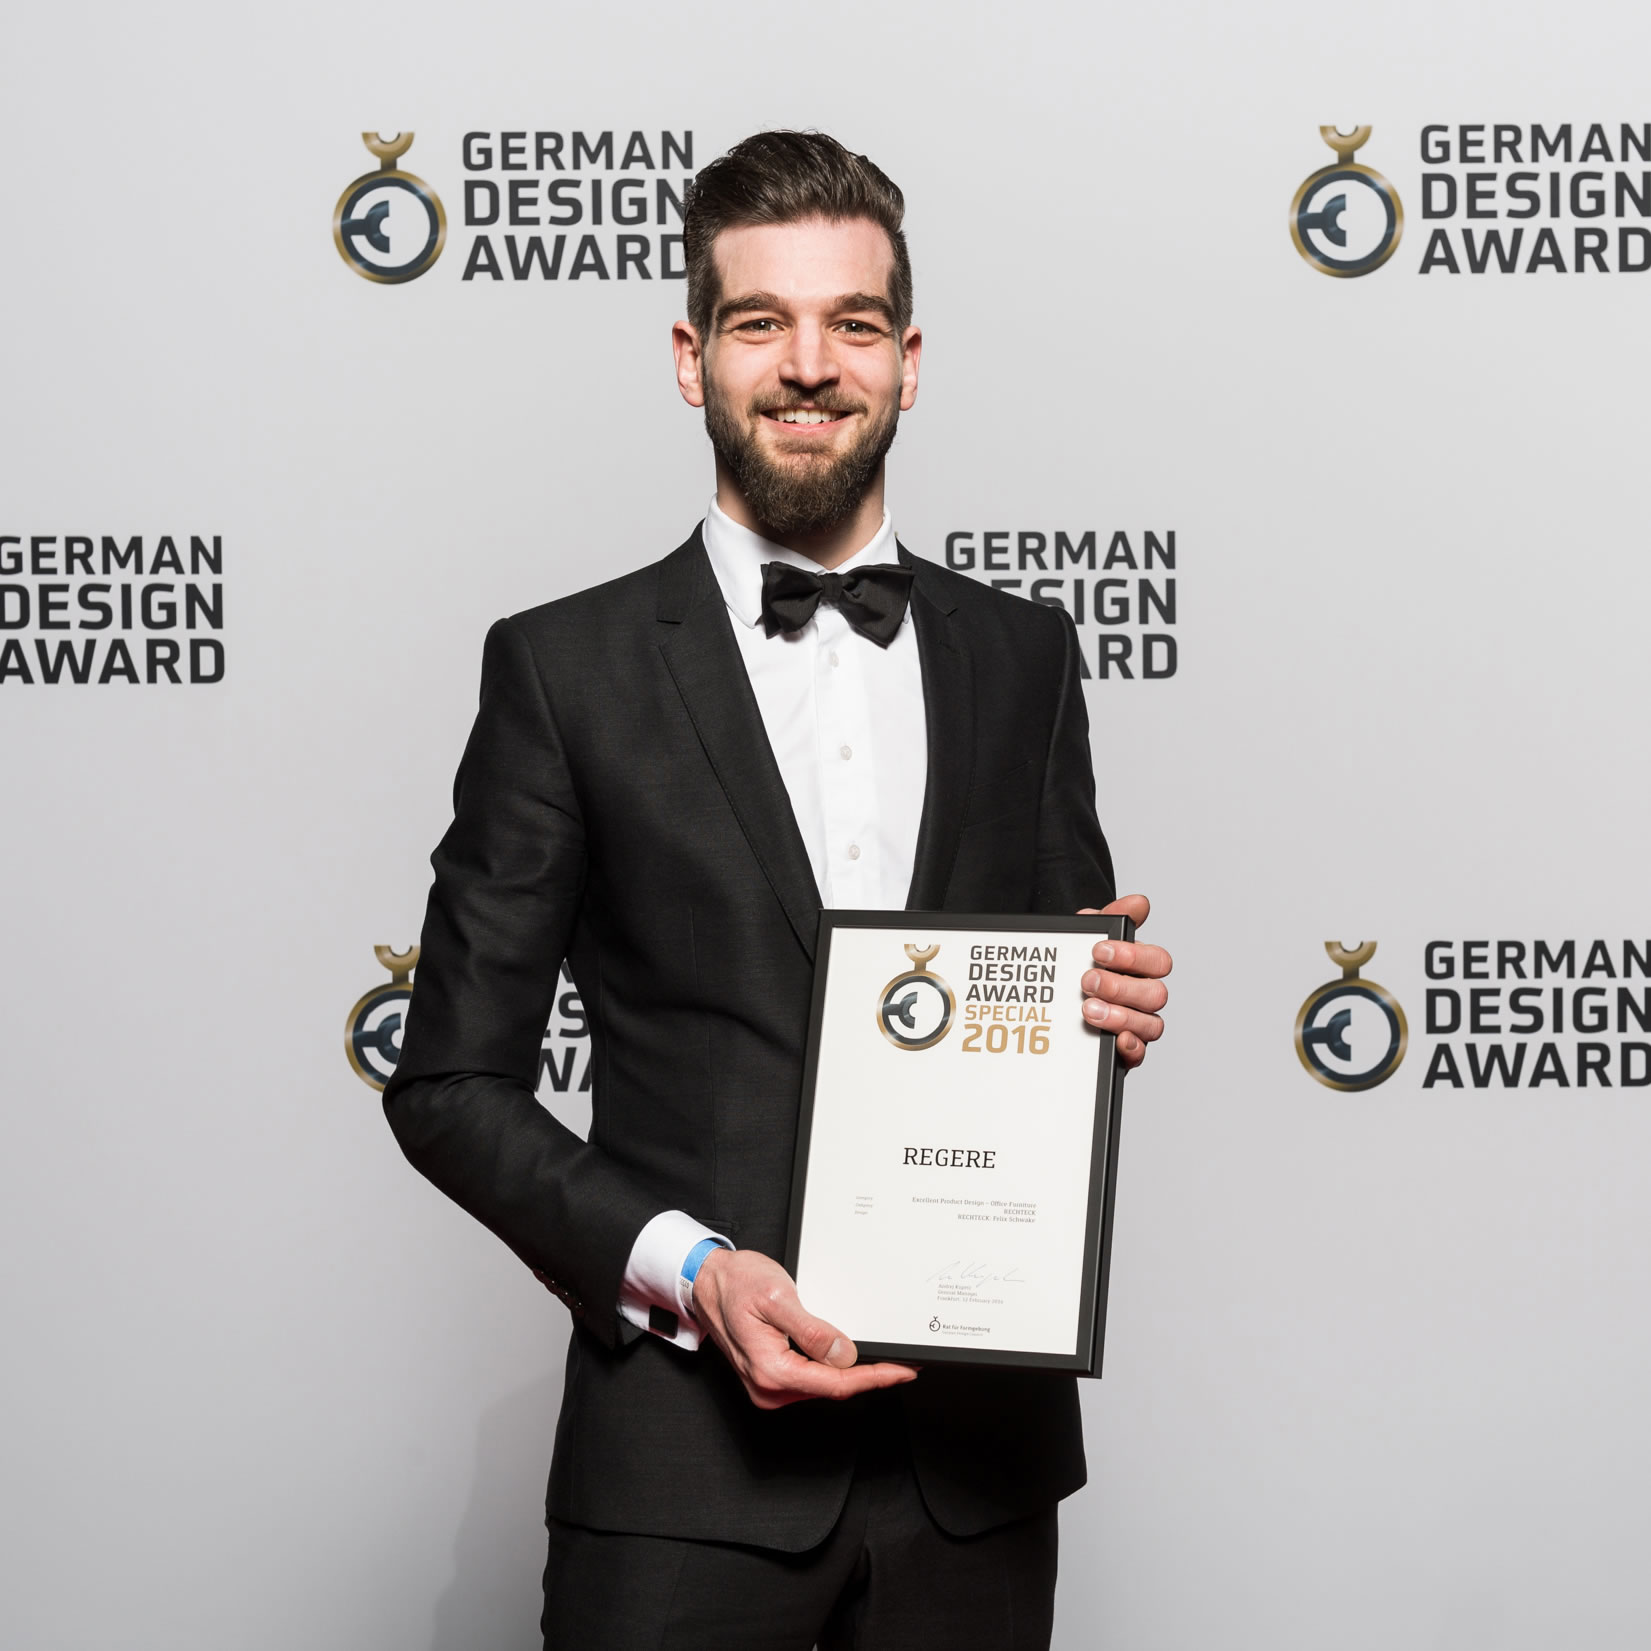 Award Winning Designer FELIX SCHWAKE German Design Award 2016